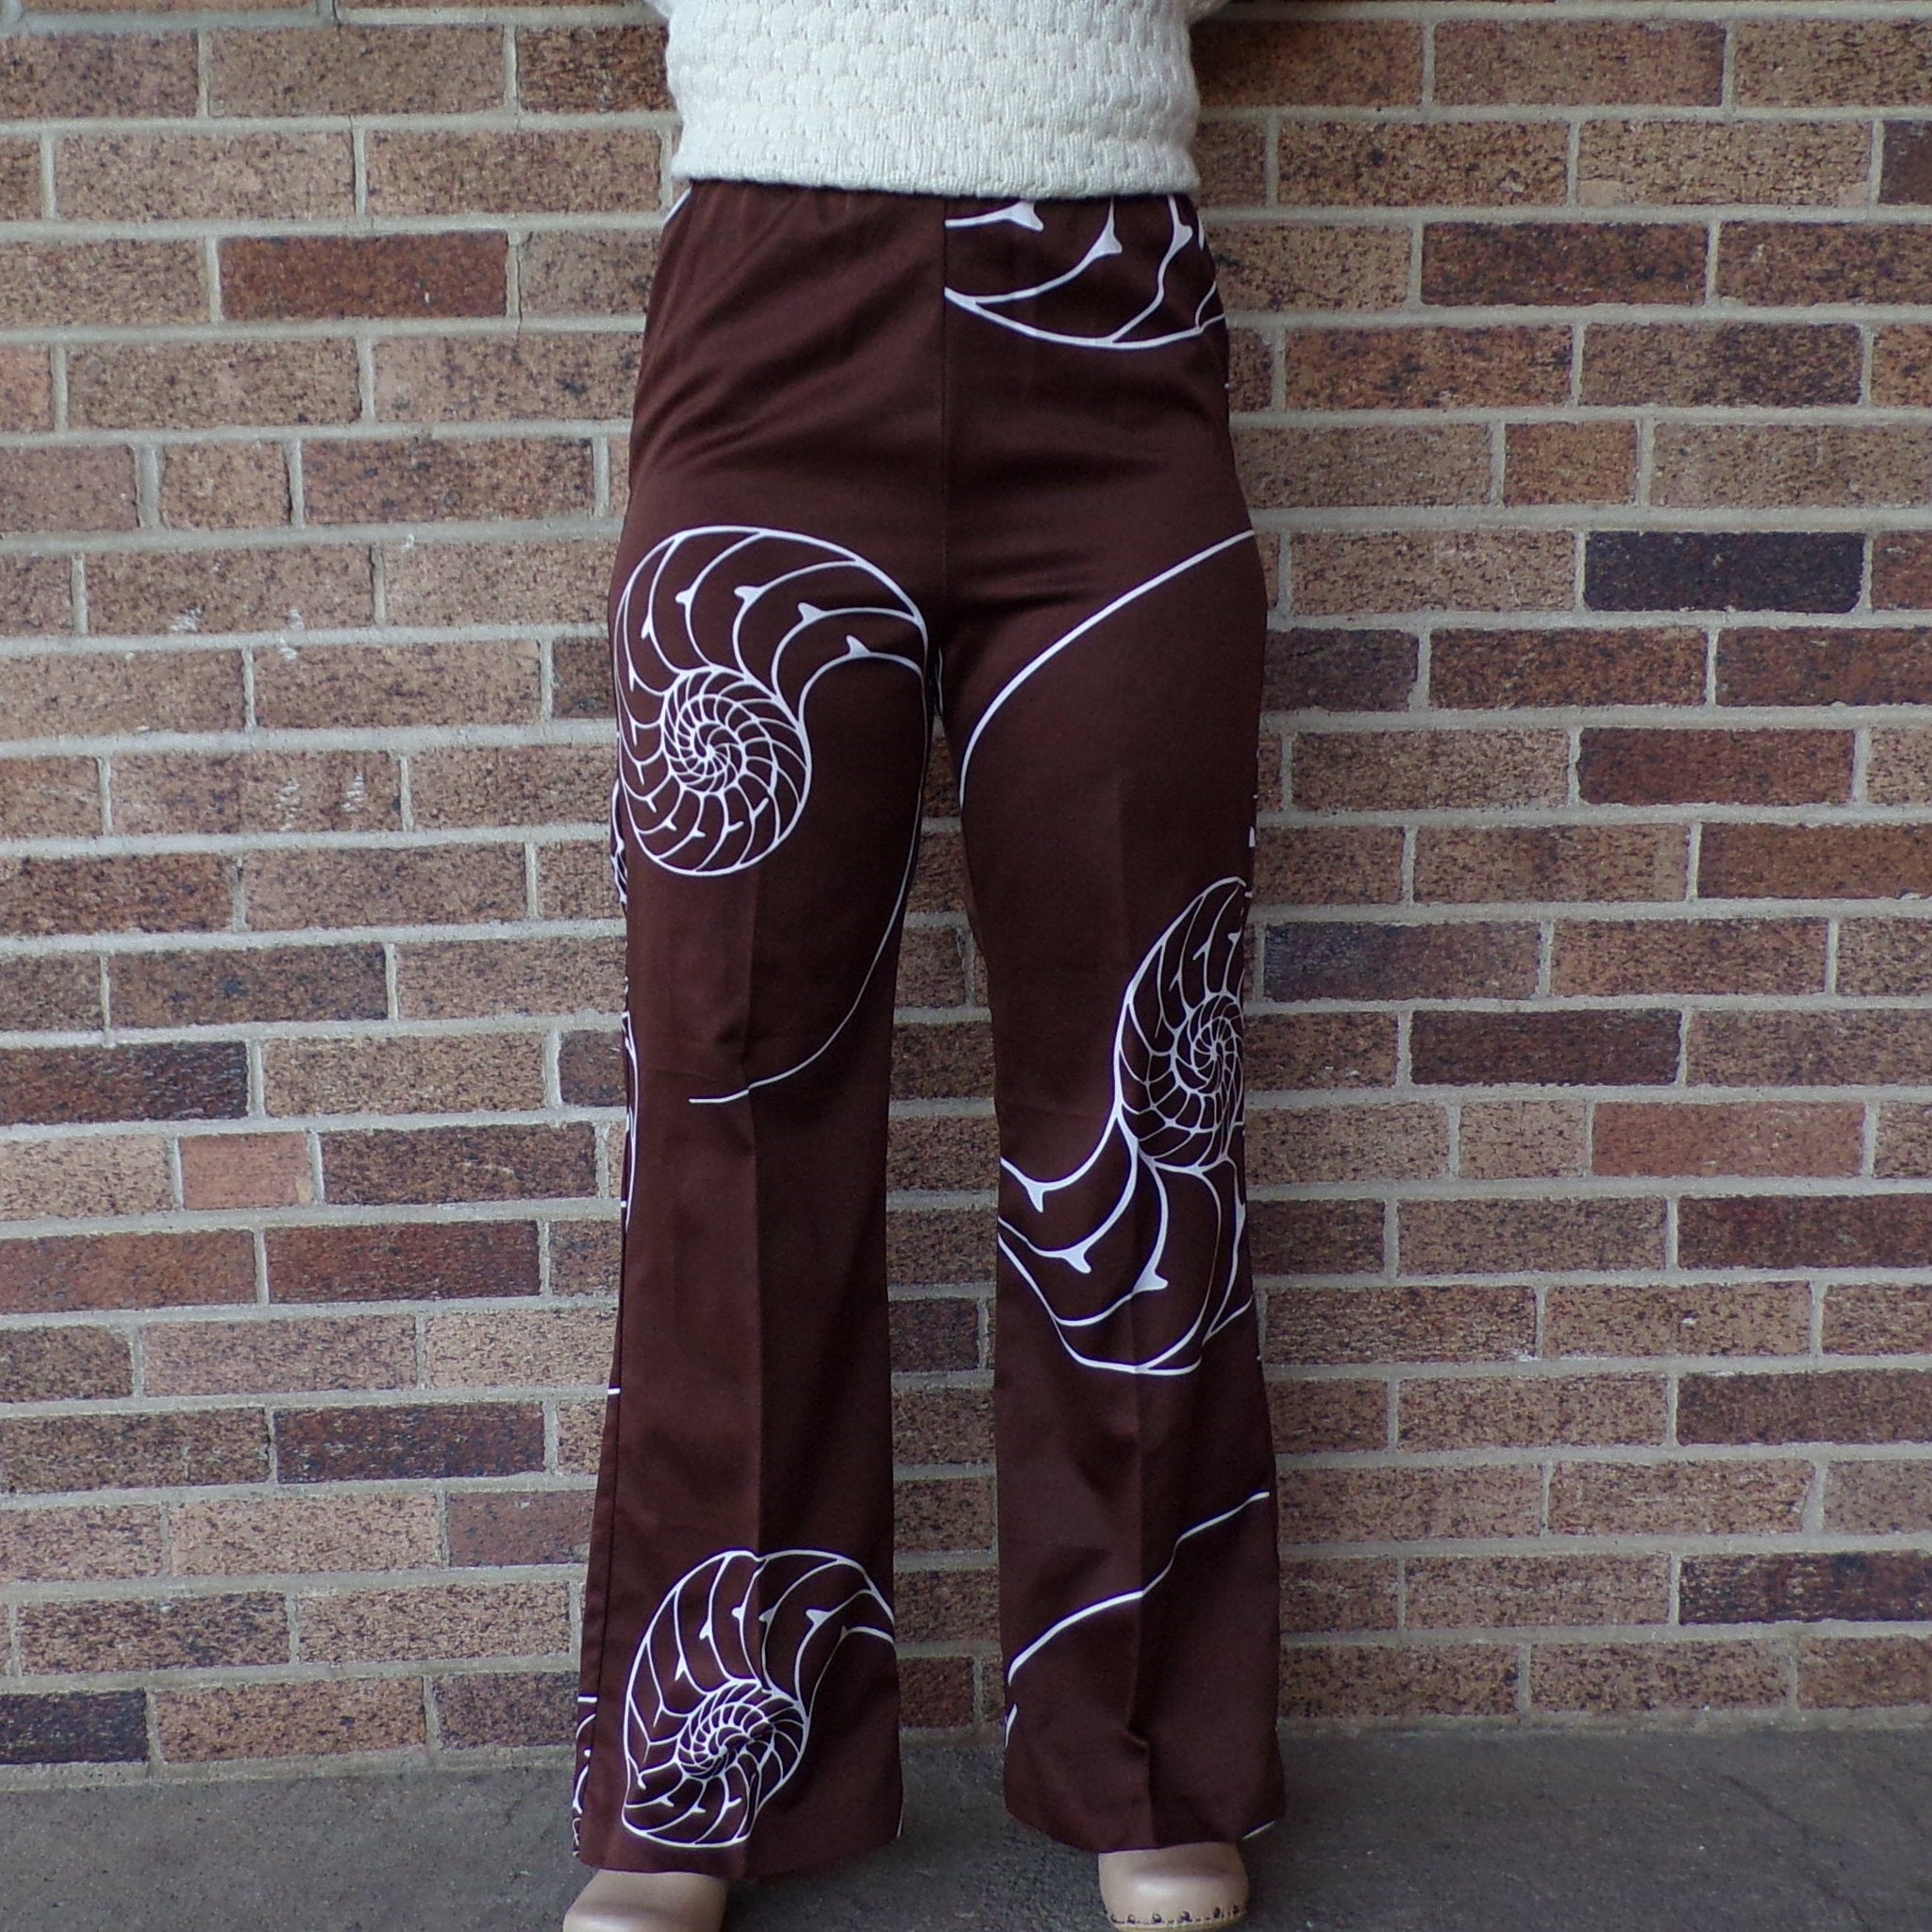 brown SATEEN NAUTILUS PANTS wide leg shell 1970's 70's S (B9)